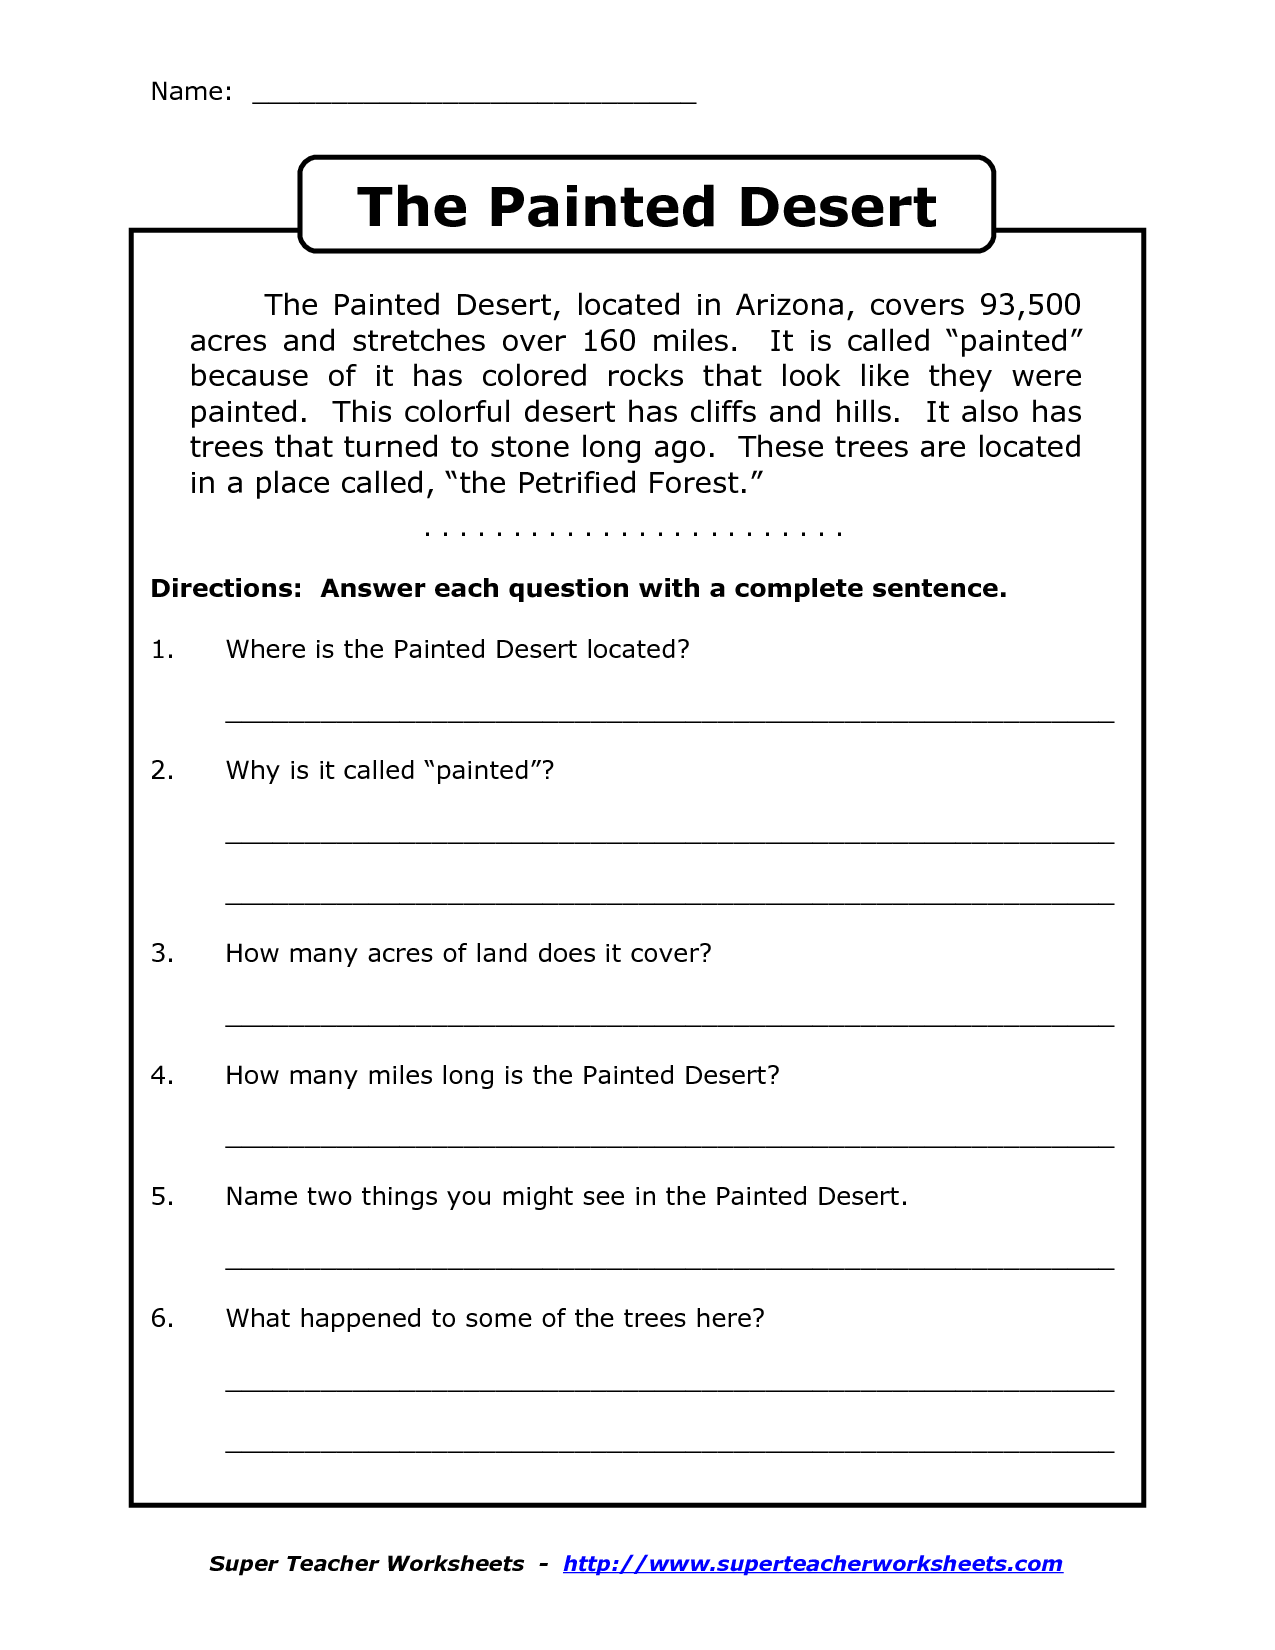 Reading Worksheets for 4th Grade | Reading Comprehension Worksheets ...